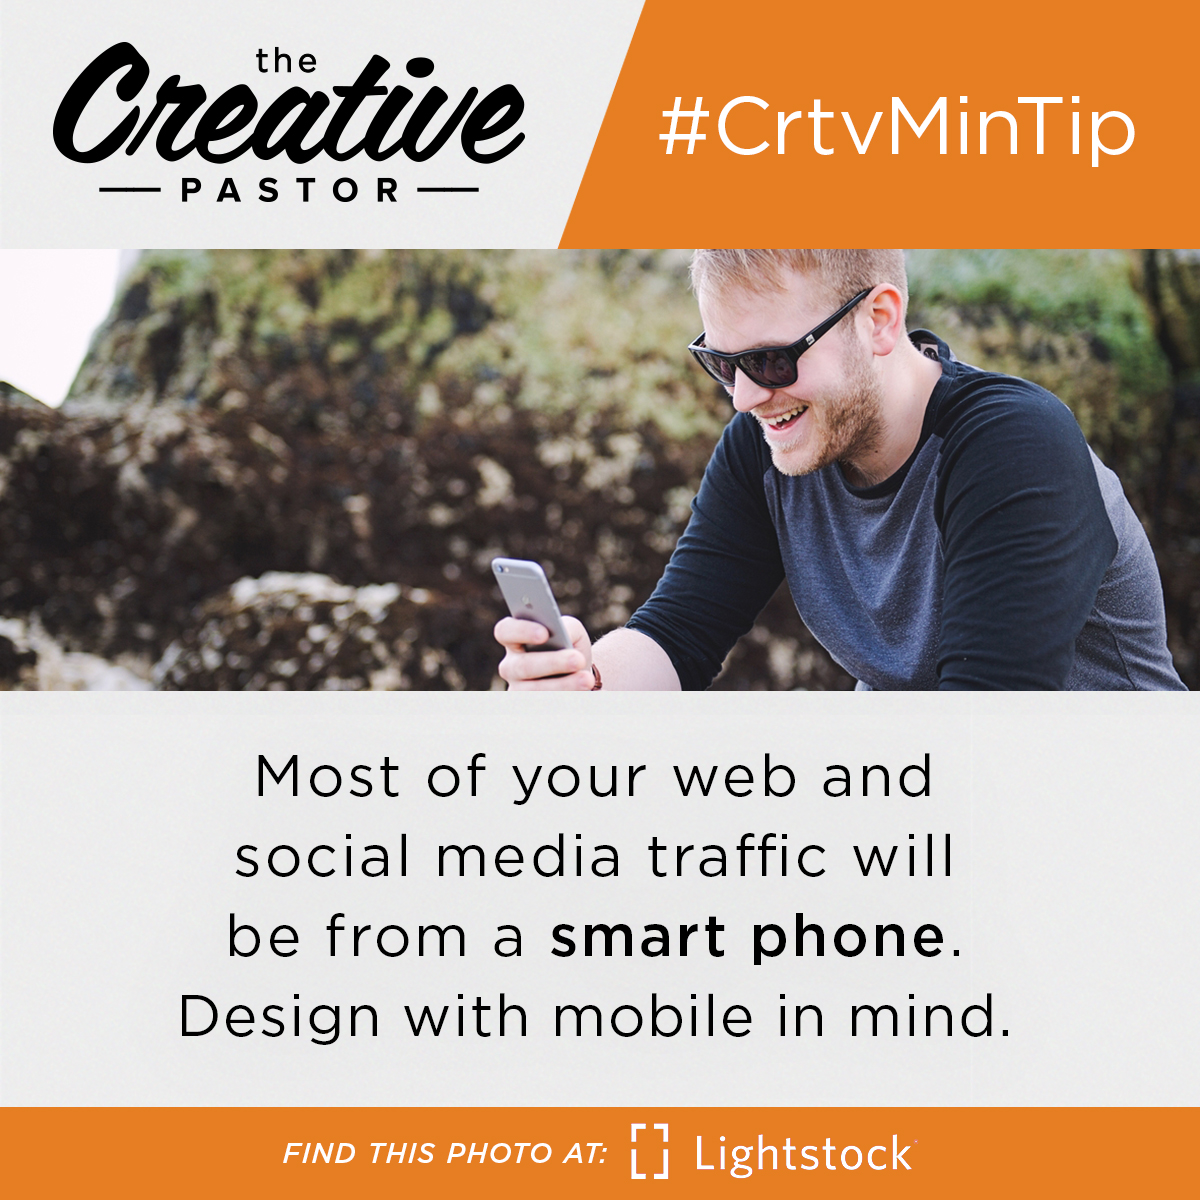 Most of your web and social media traffic will be from a smart phone. Design with mobile in mind.